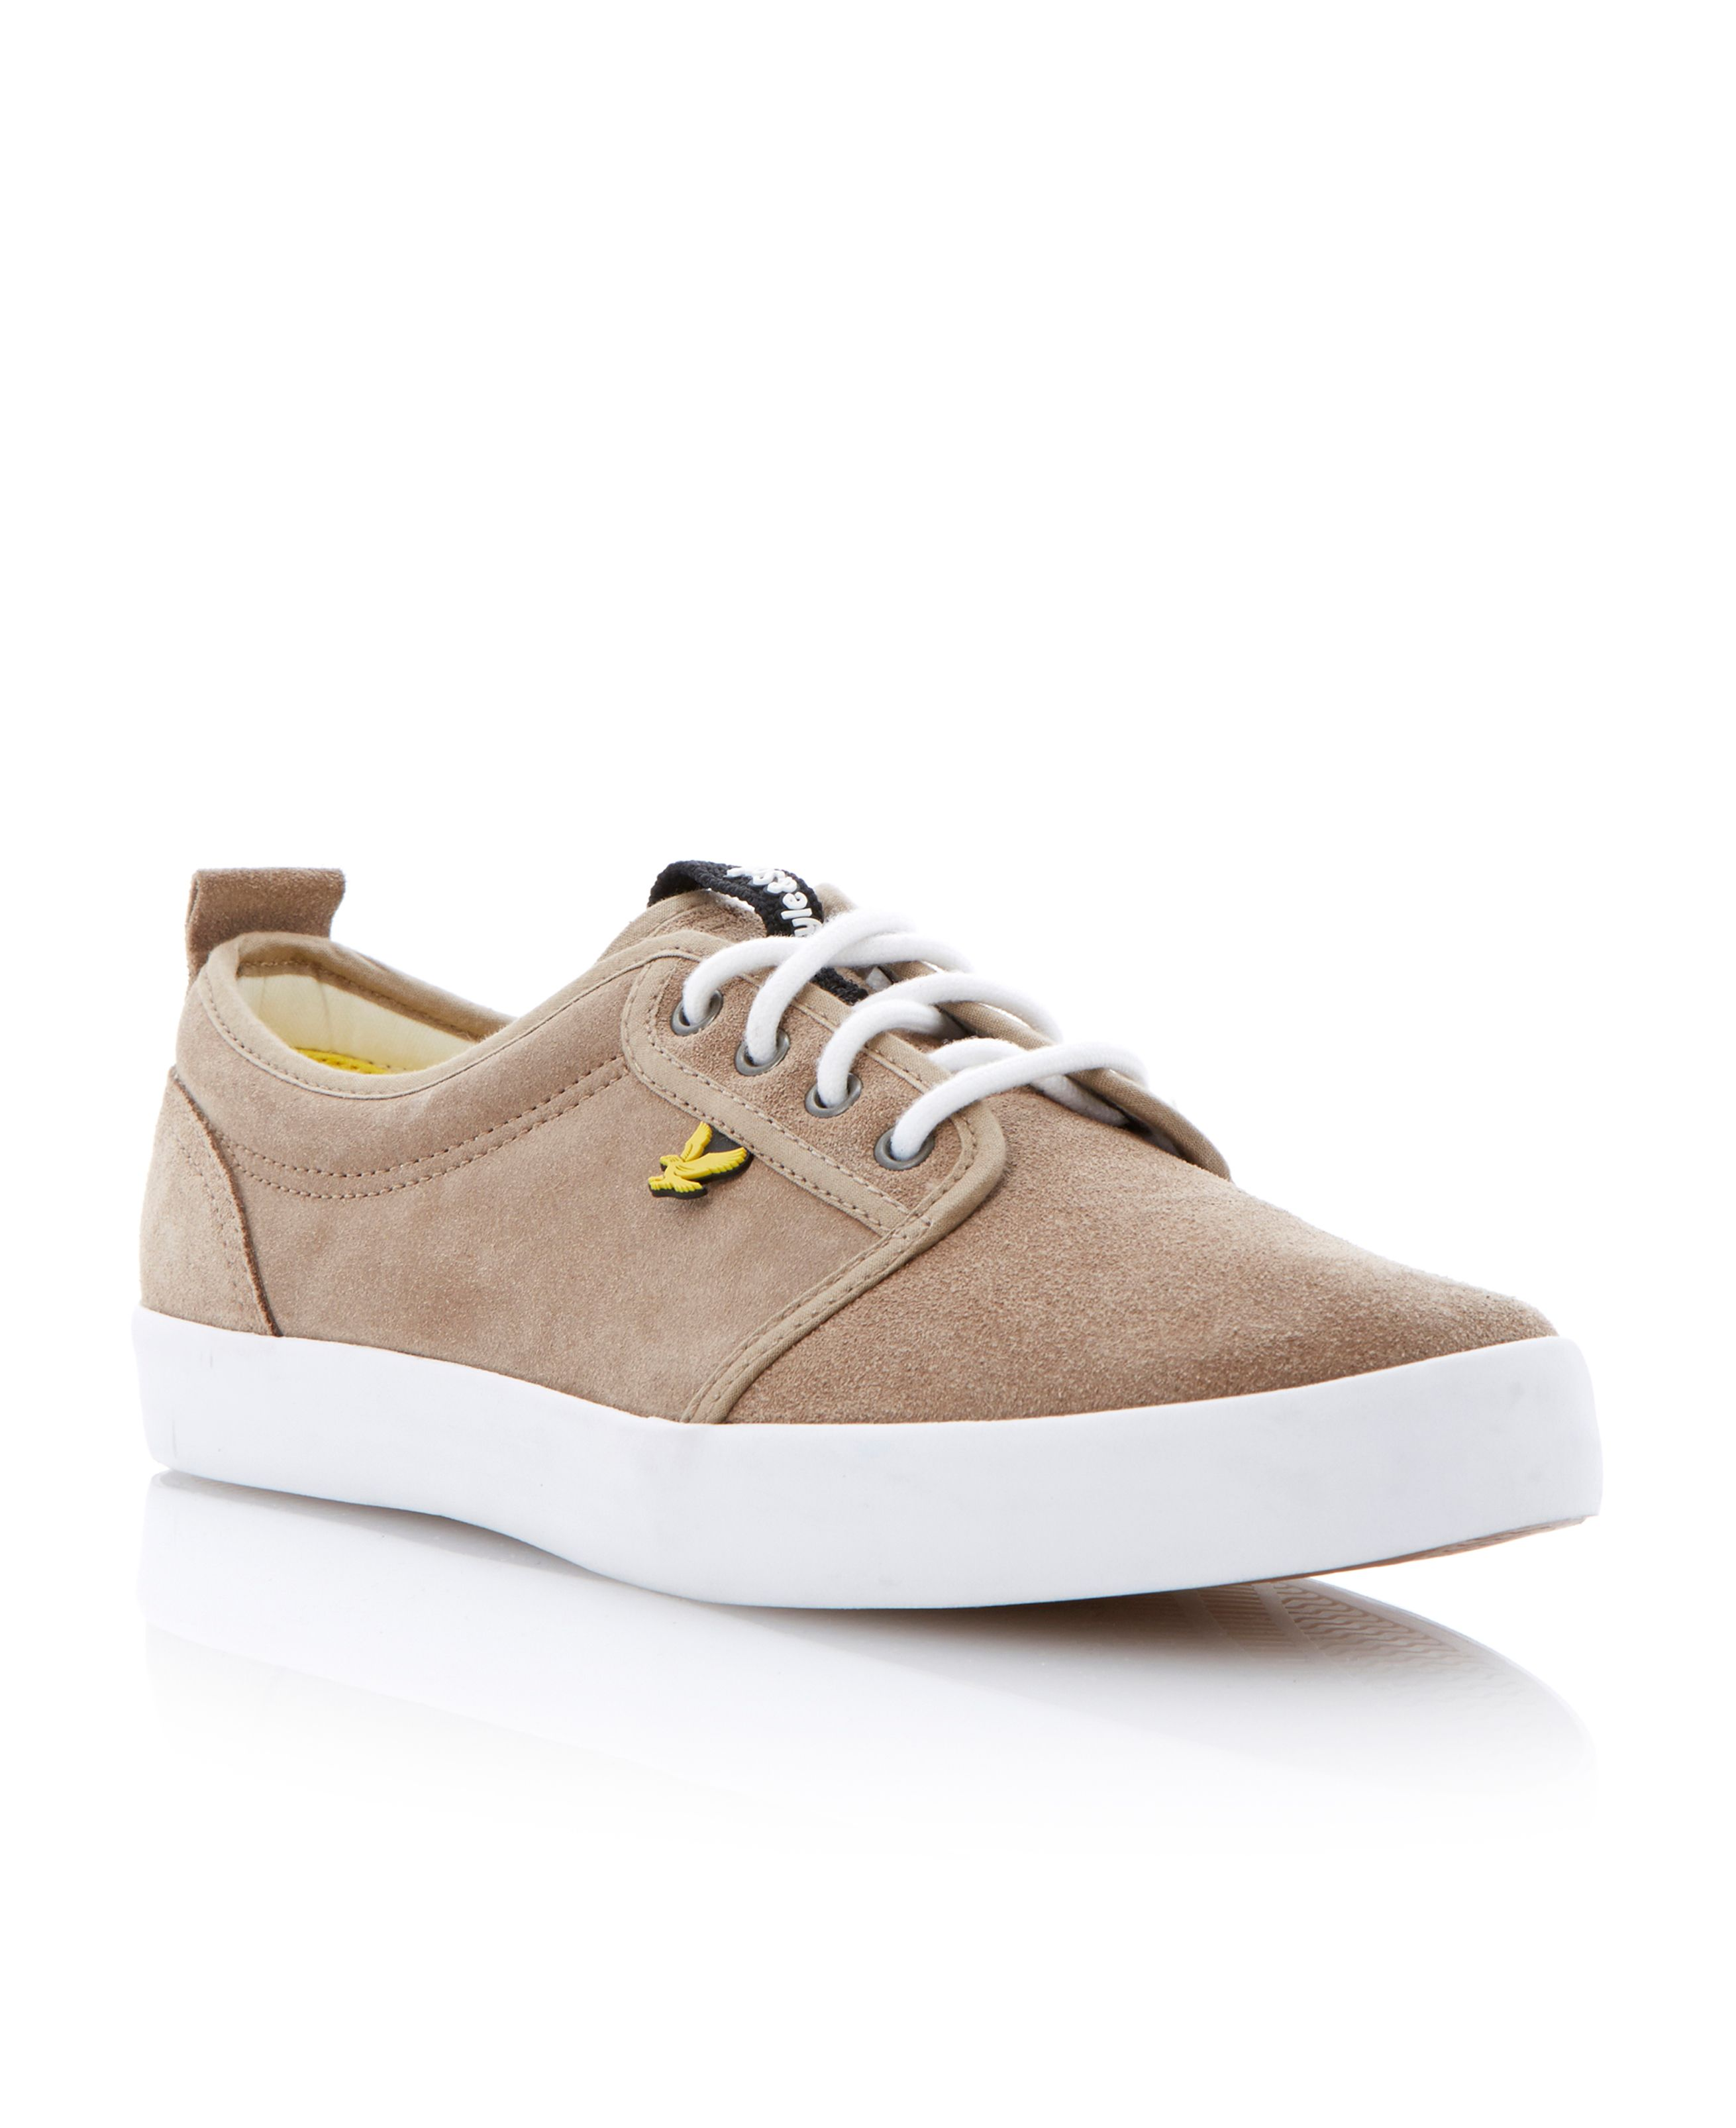 Caol suede lace up derby plimsolls